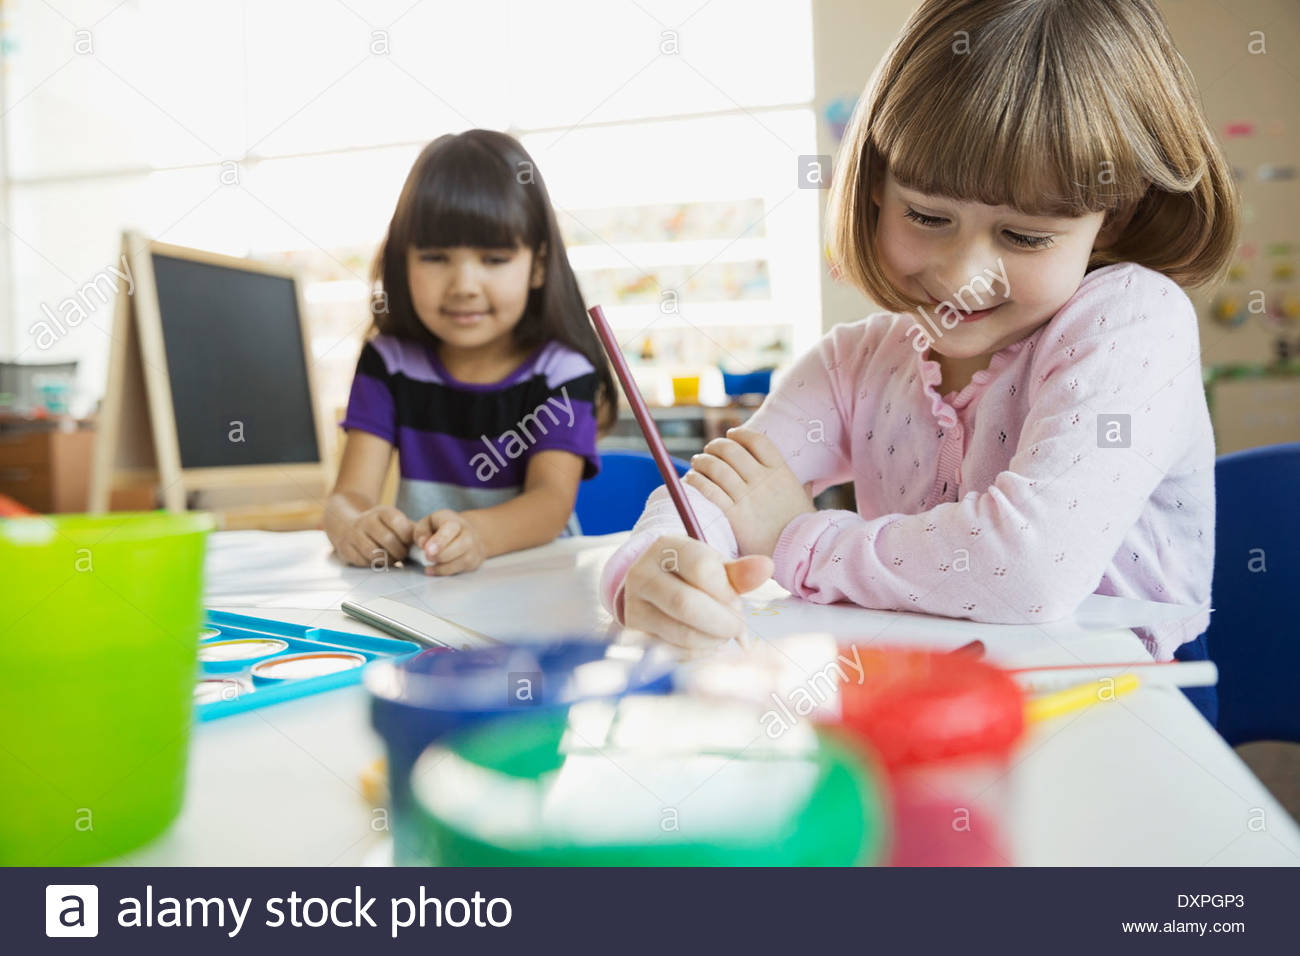 Girls drawing in art class - Stock Image